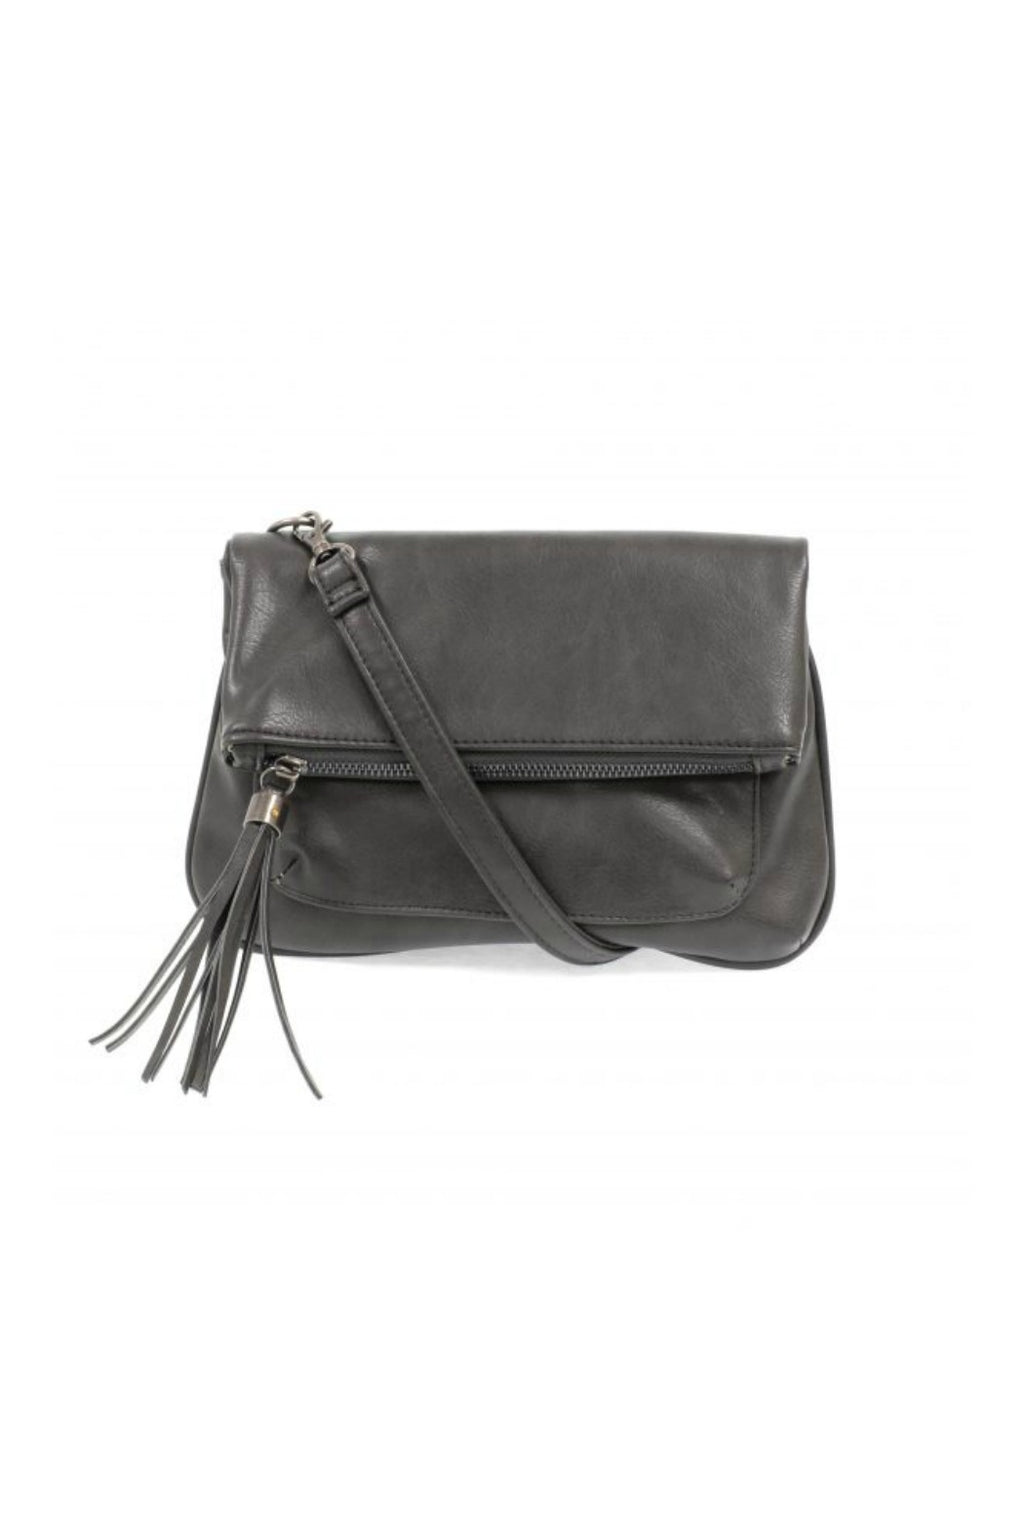 Joy Susan Alice Crossbody w/ Tassel - Charcoal